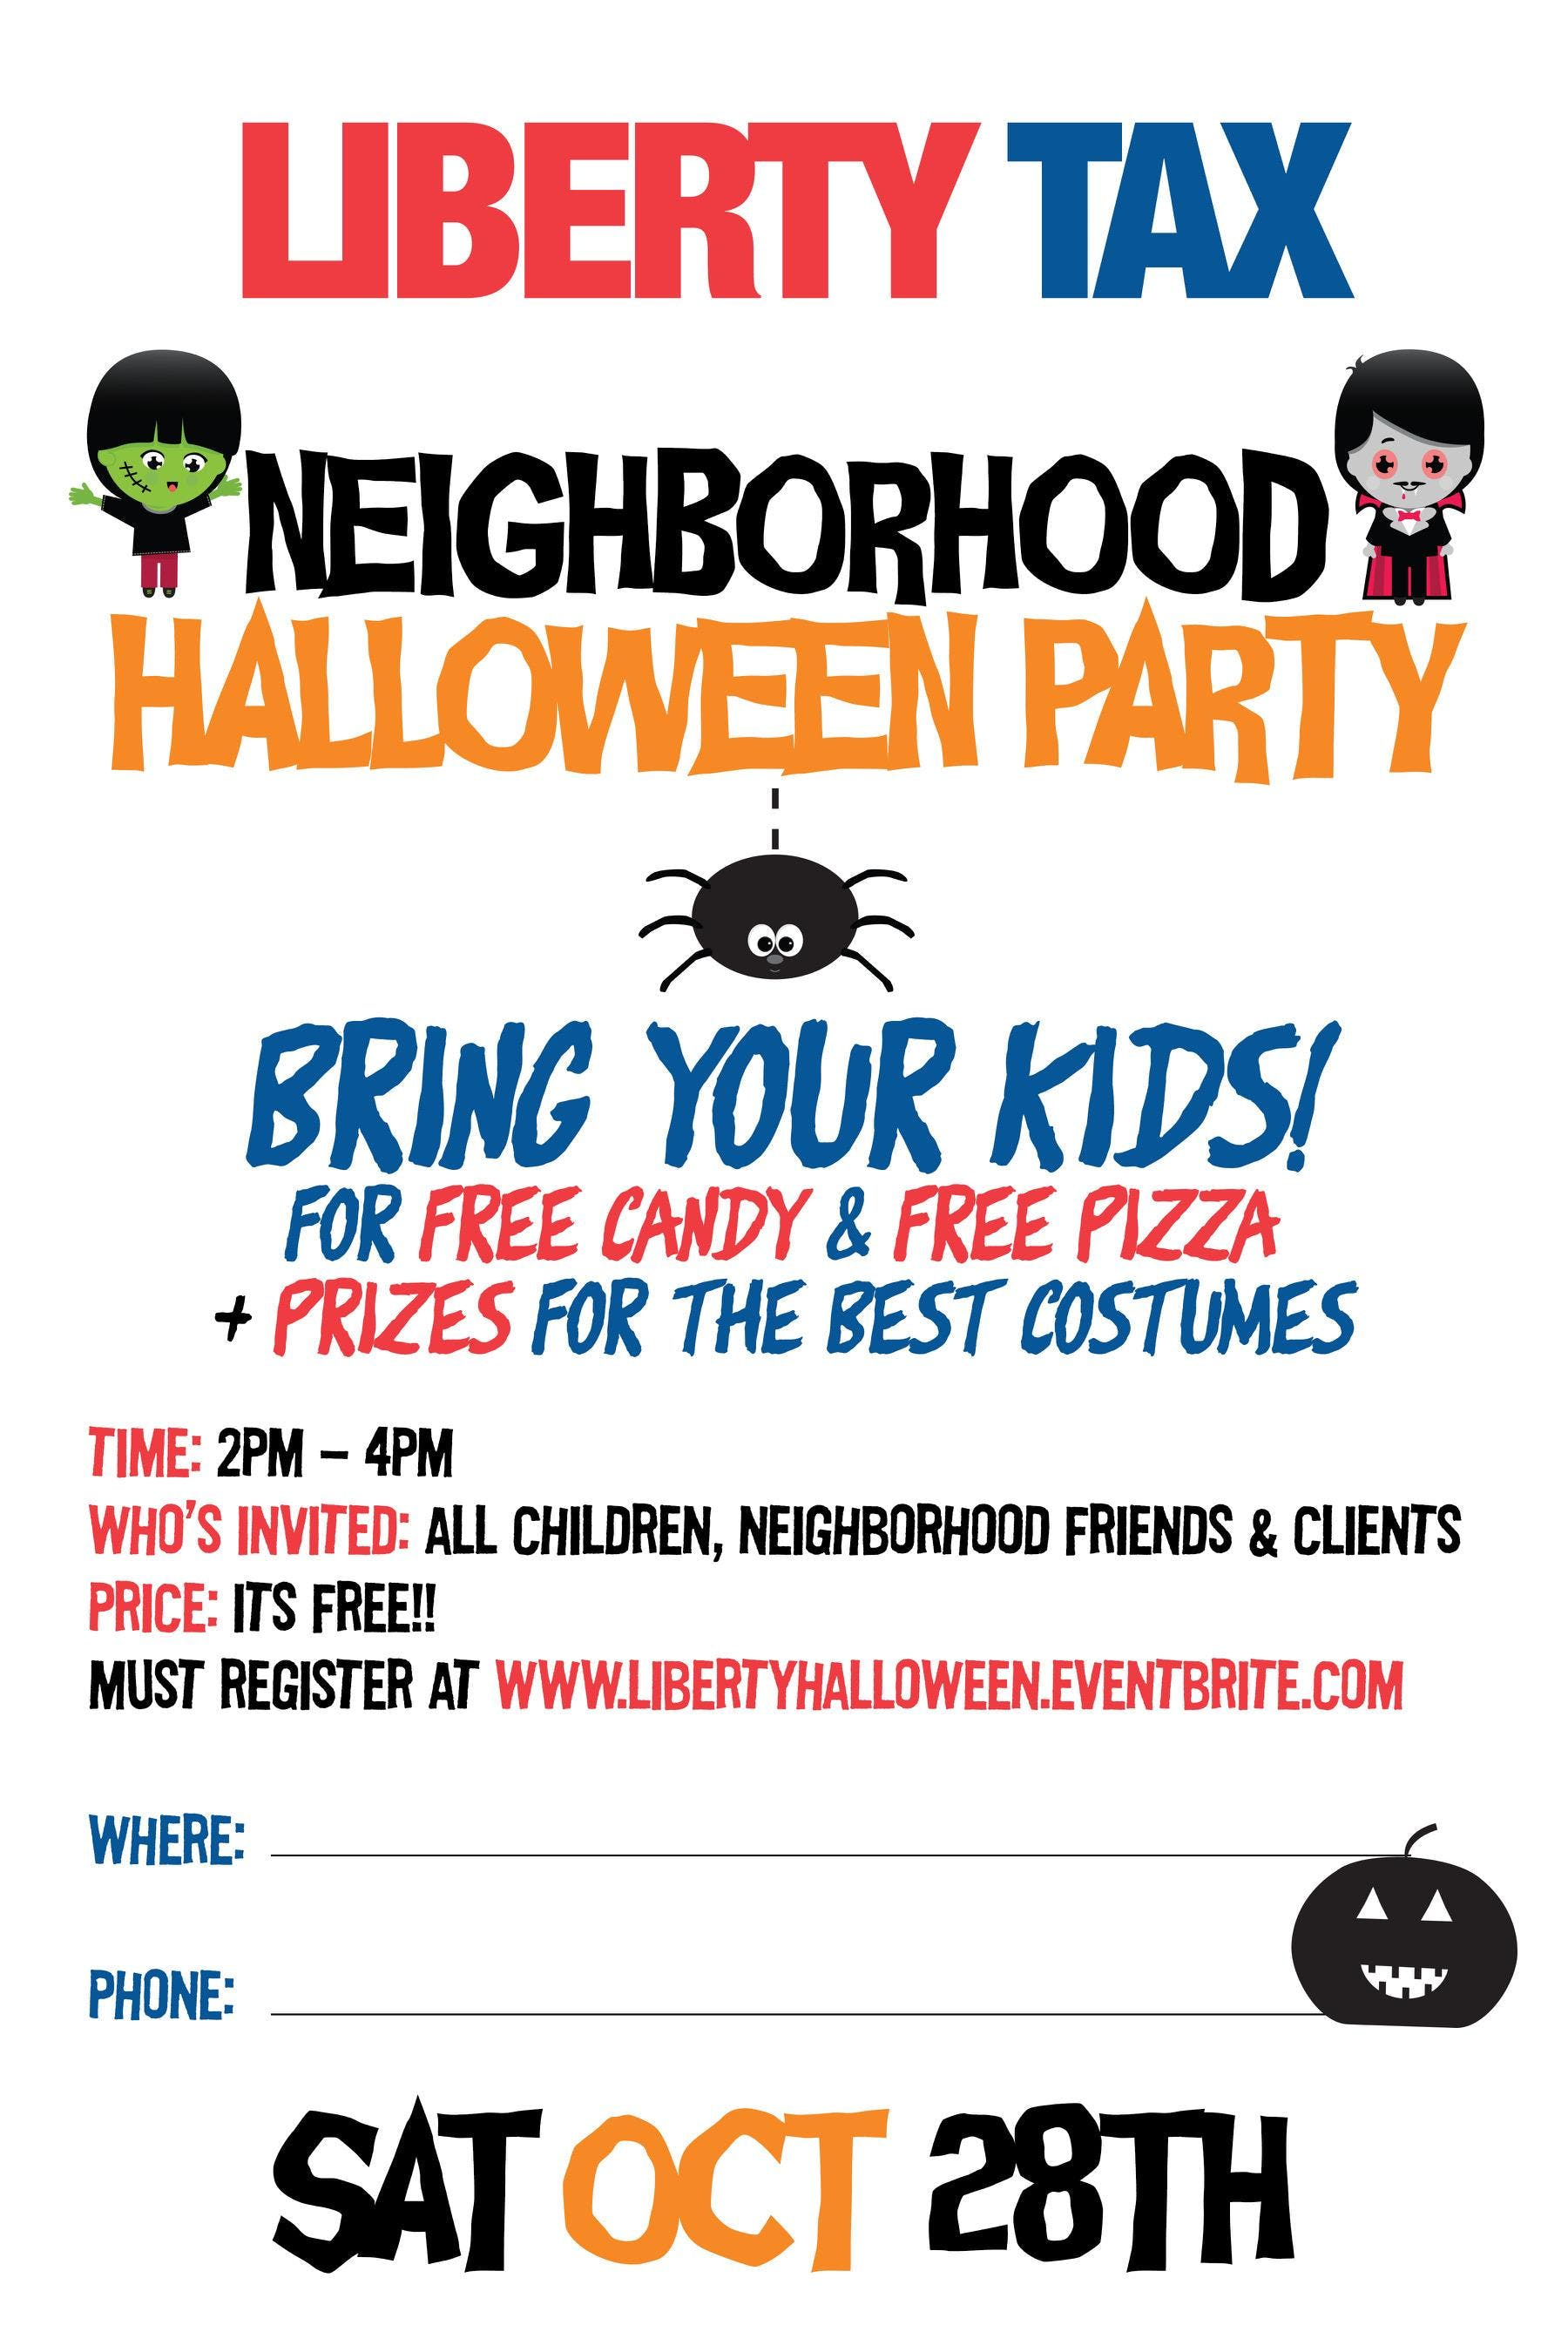 Harlem Nighborhood Halloween Party